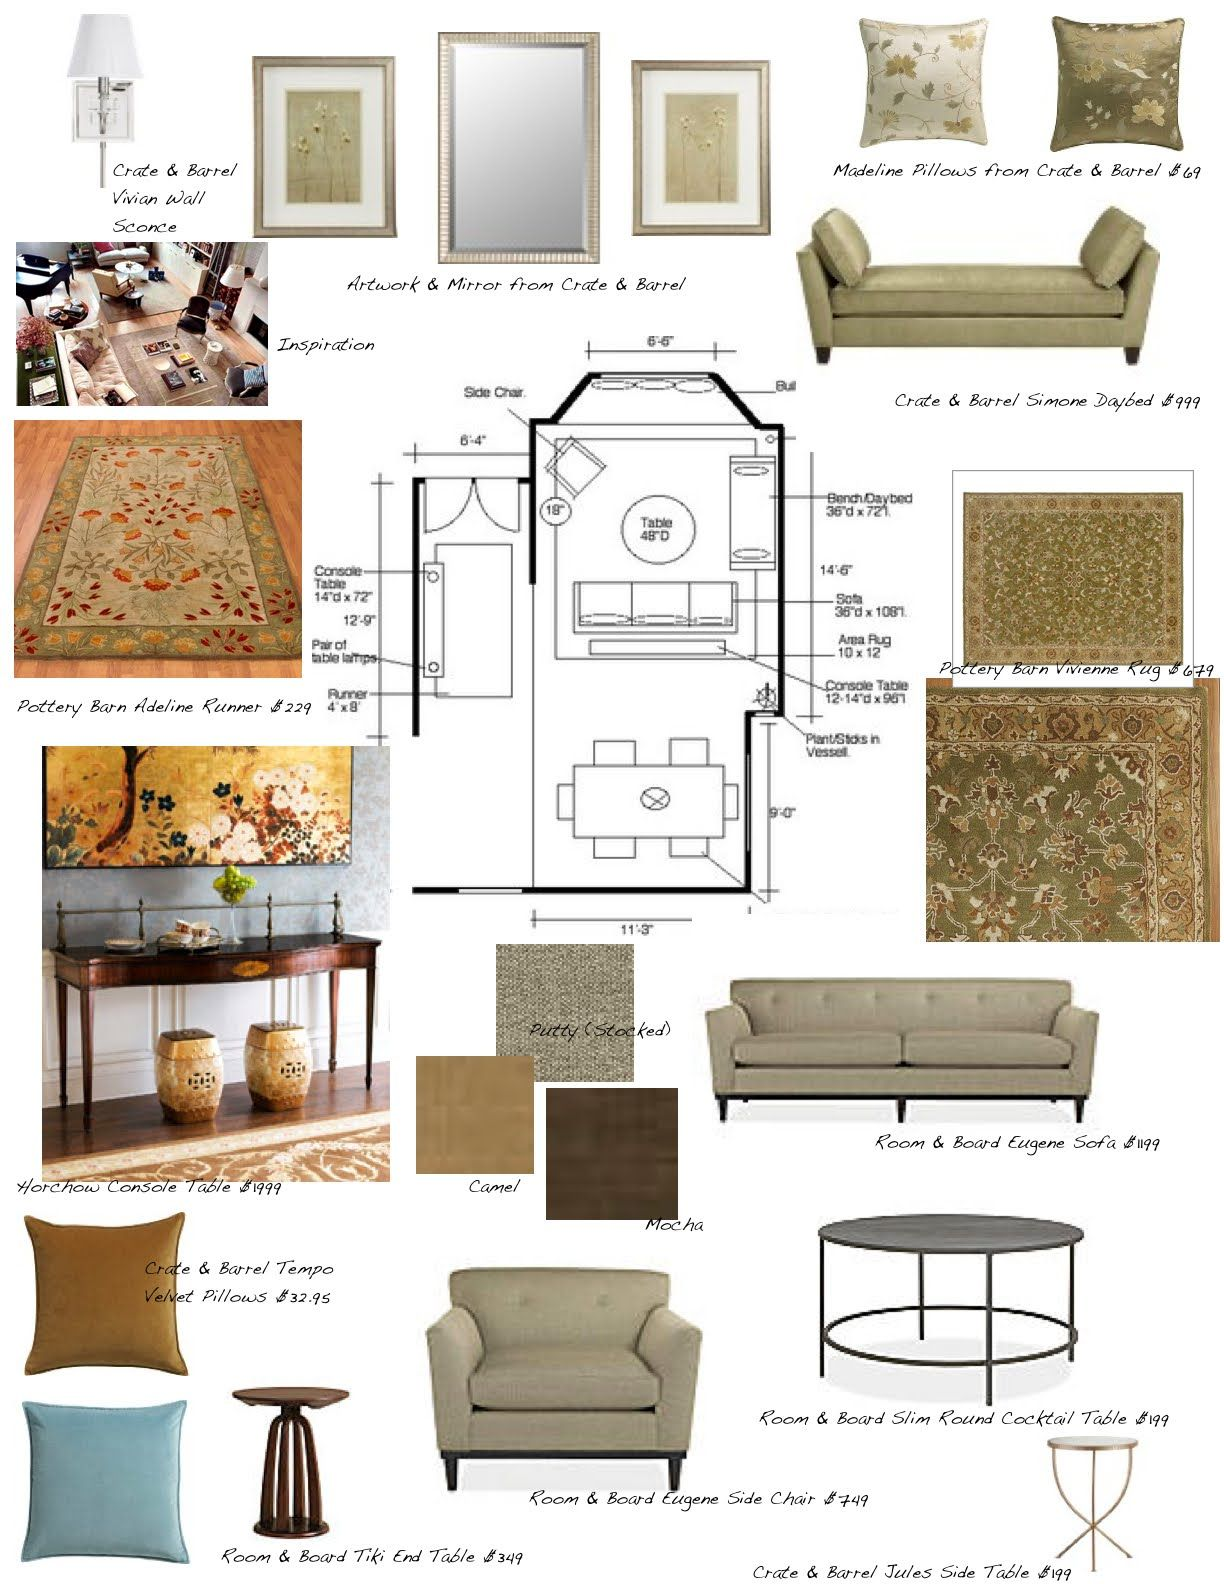 Looking For An Affordable Room Design On A Budget Want Flat Rate Per Package I Offer Complete Interior